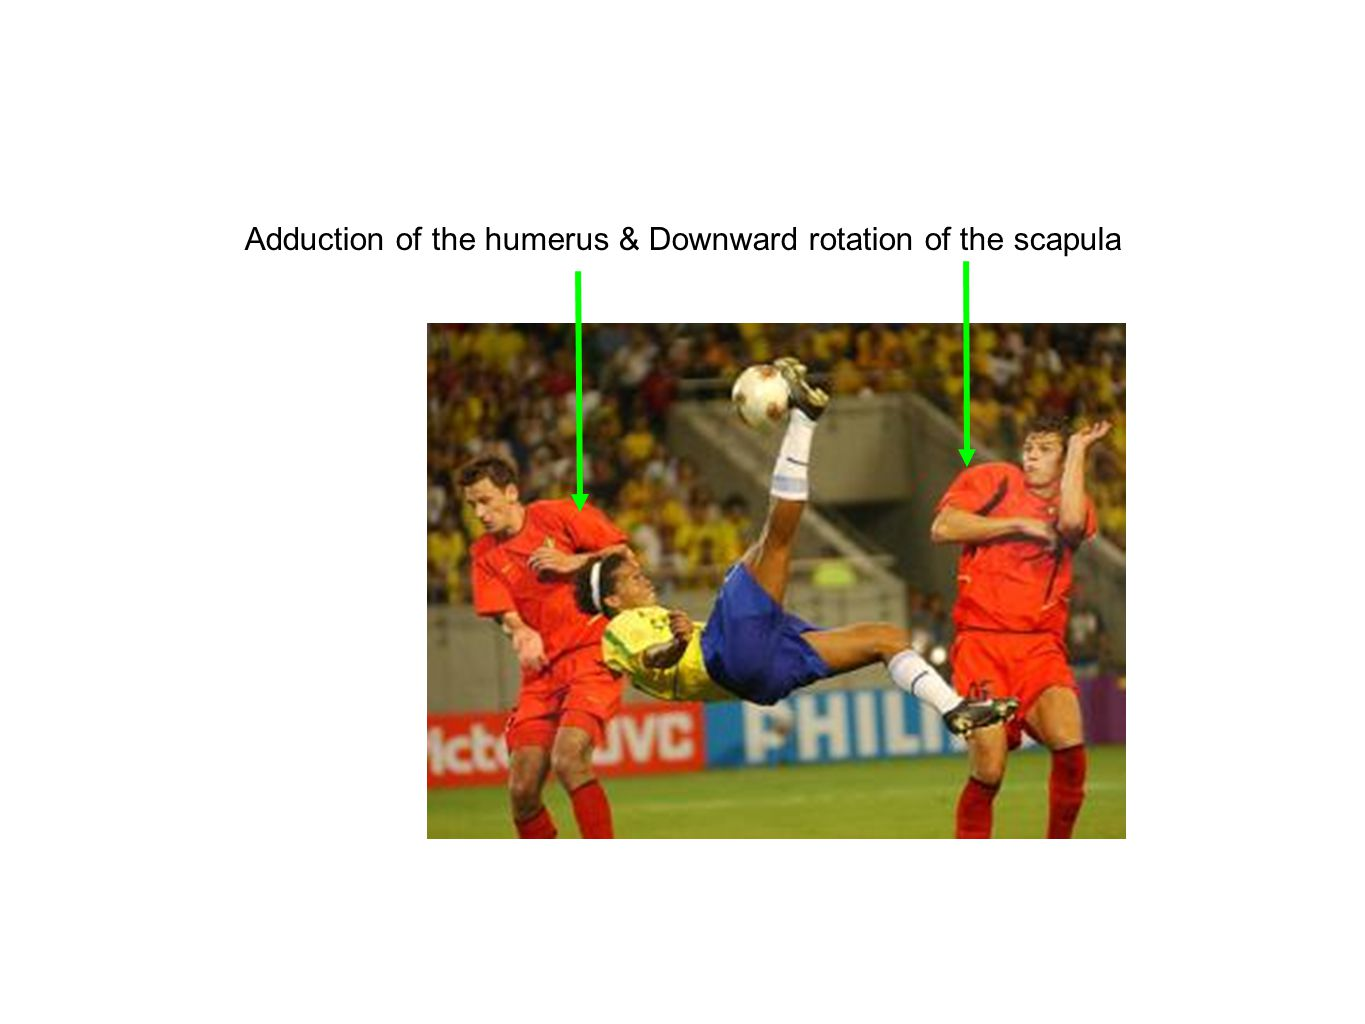 Adduction of the humerus & Downward rotation of the scapula